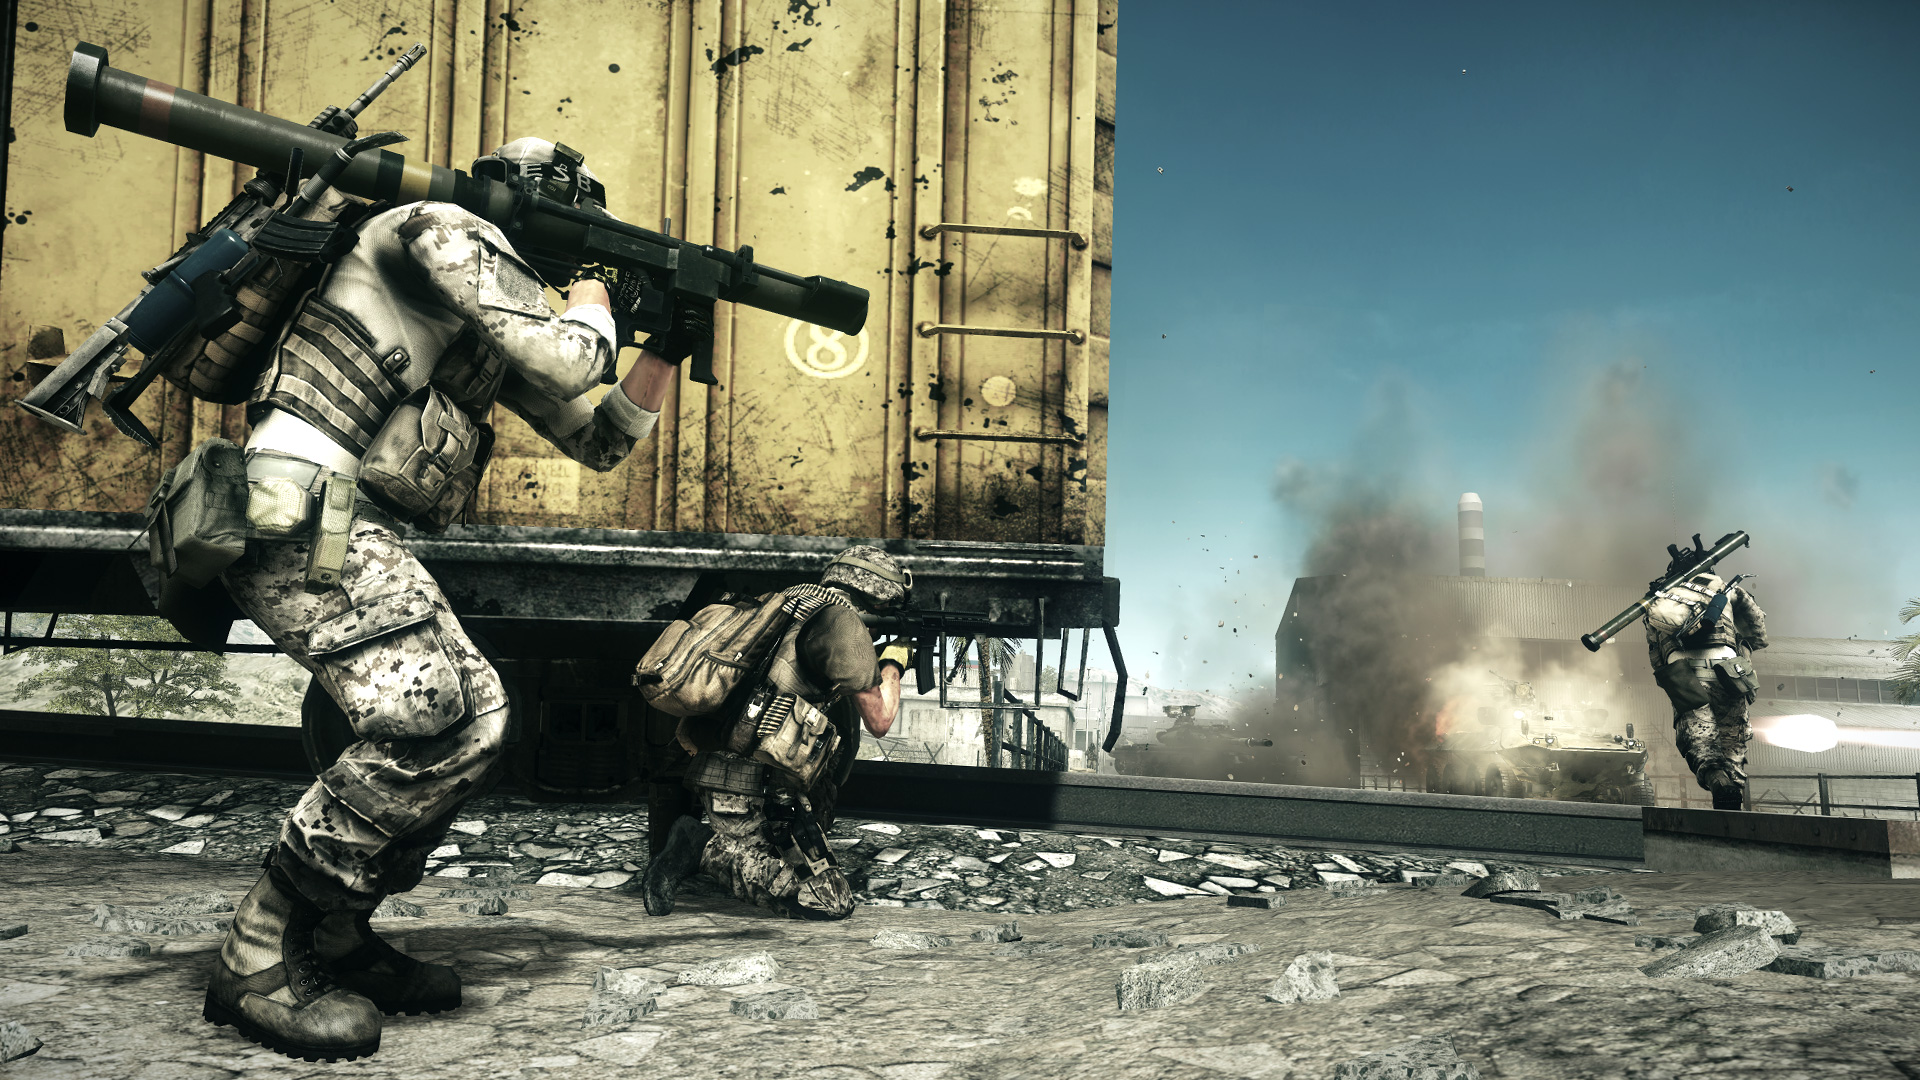 BF3---Back-to-Karkand---Strike-at-Karkand-screenshots---Nov-7th---1